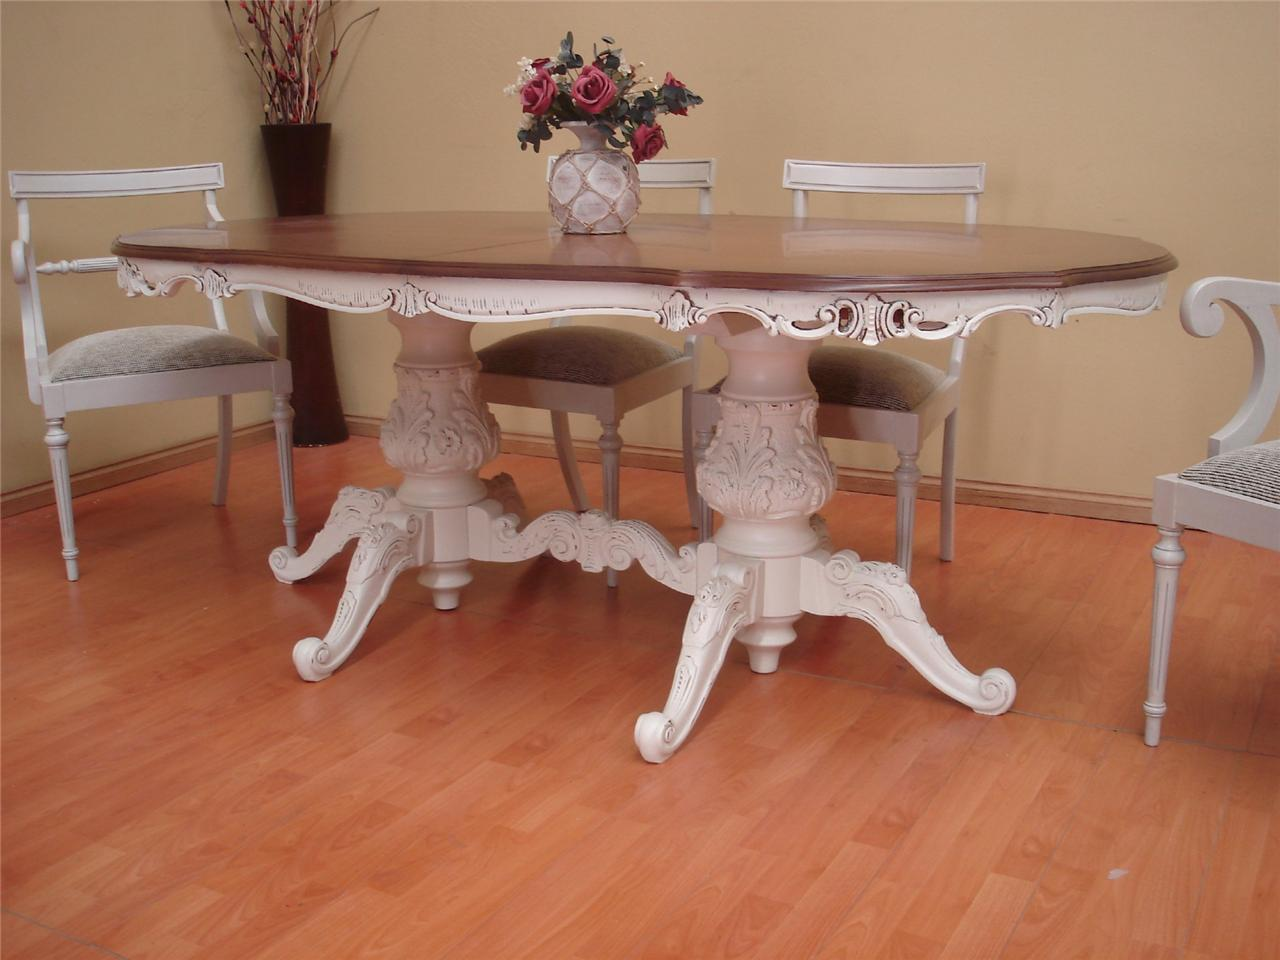 Antique French Shabby Style 10 Seater Extension Dining Room Table Only EBay